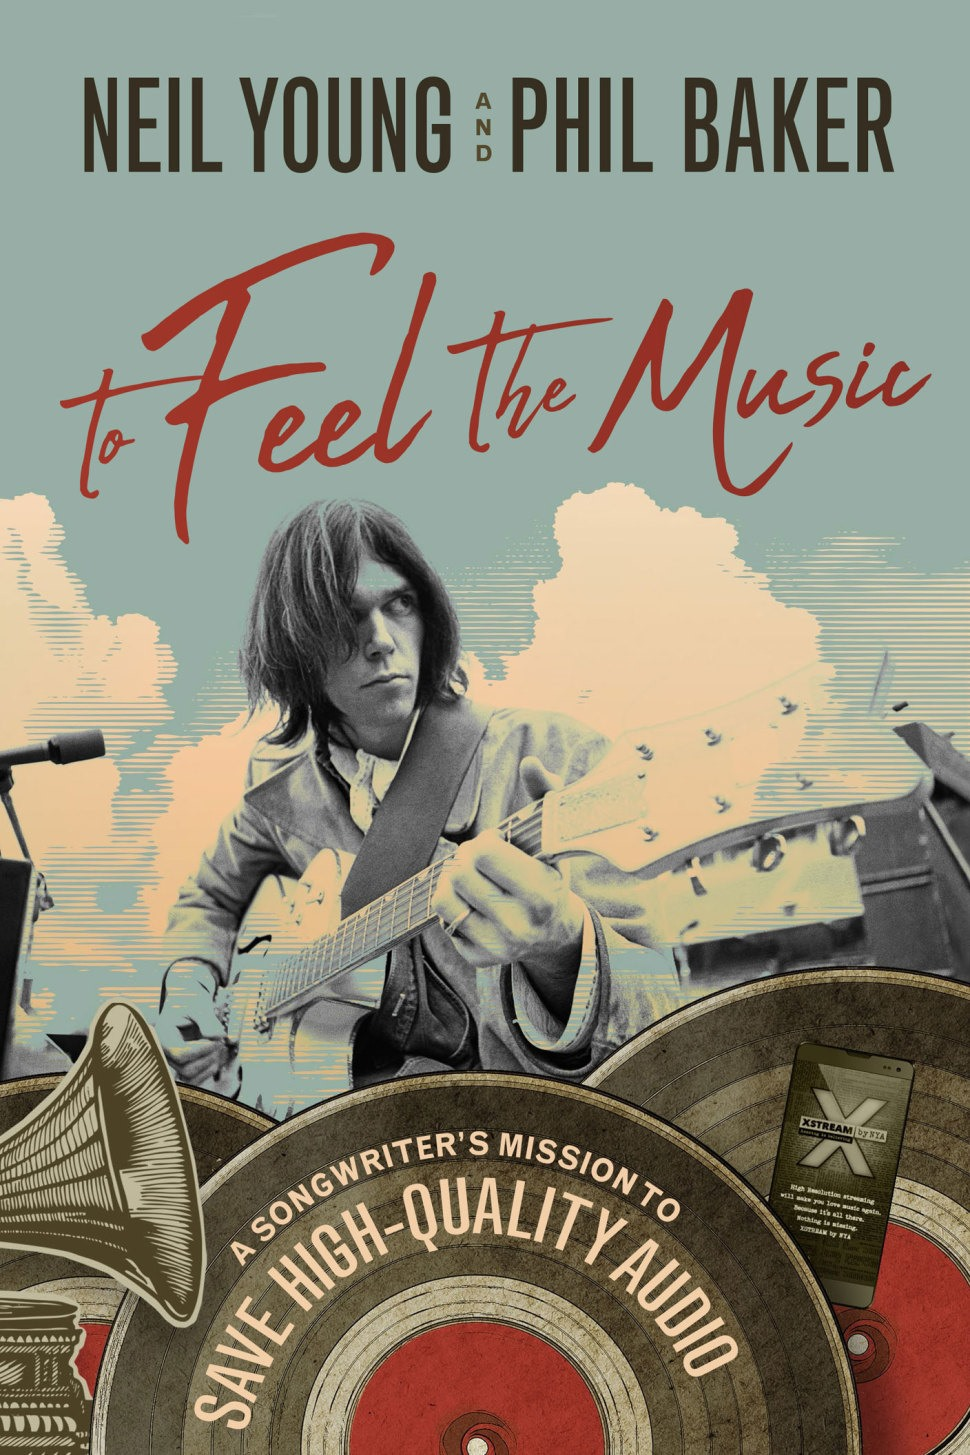 Neil Young To Feel The Music Book